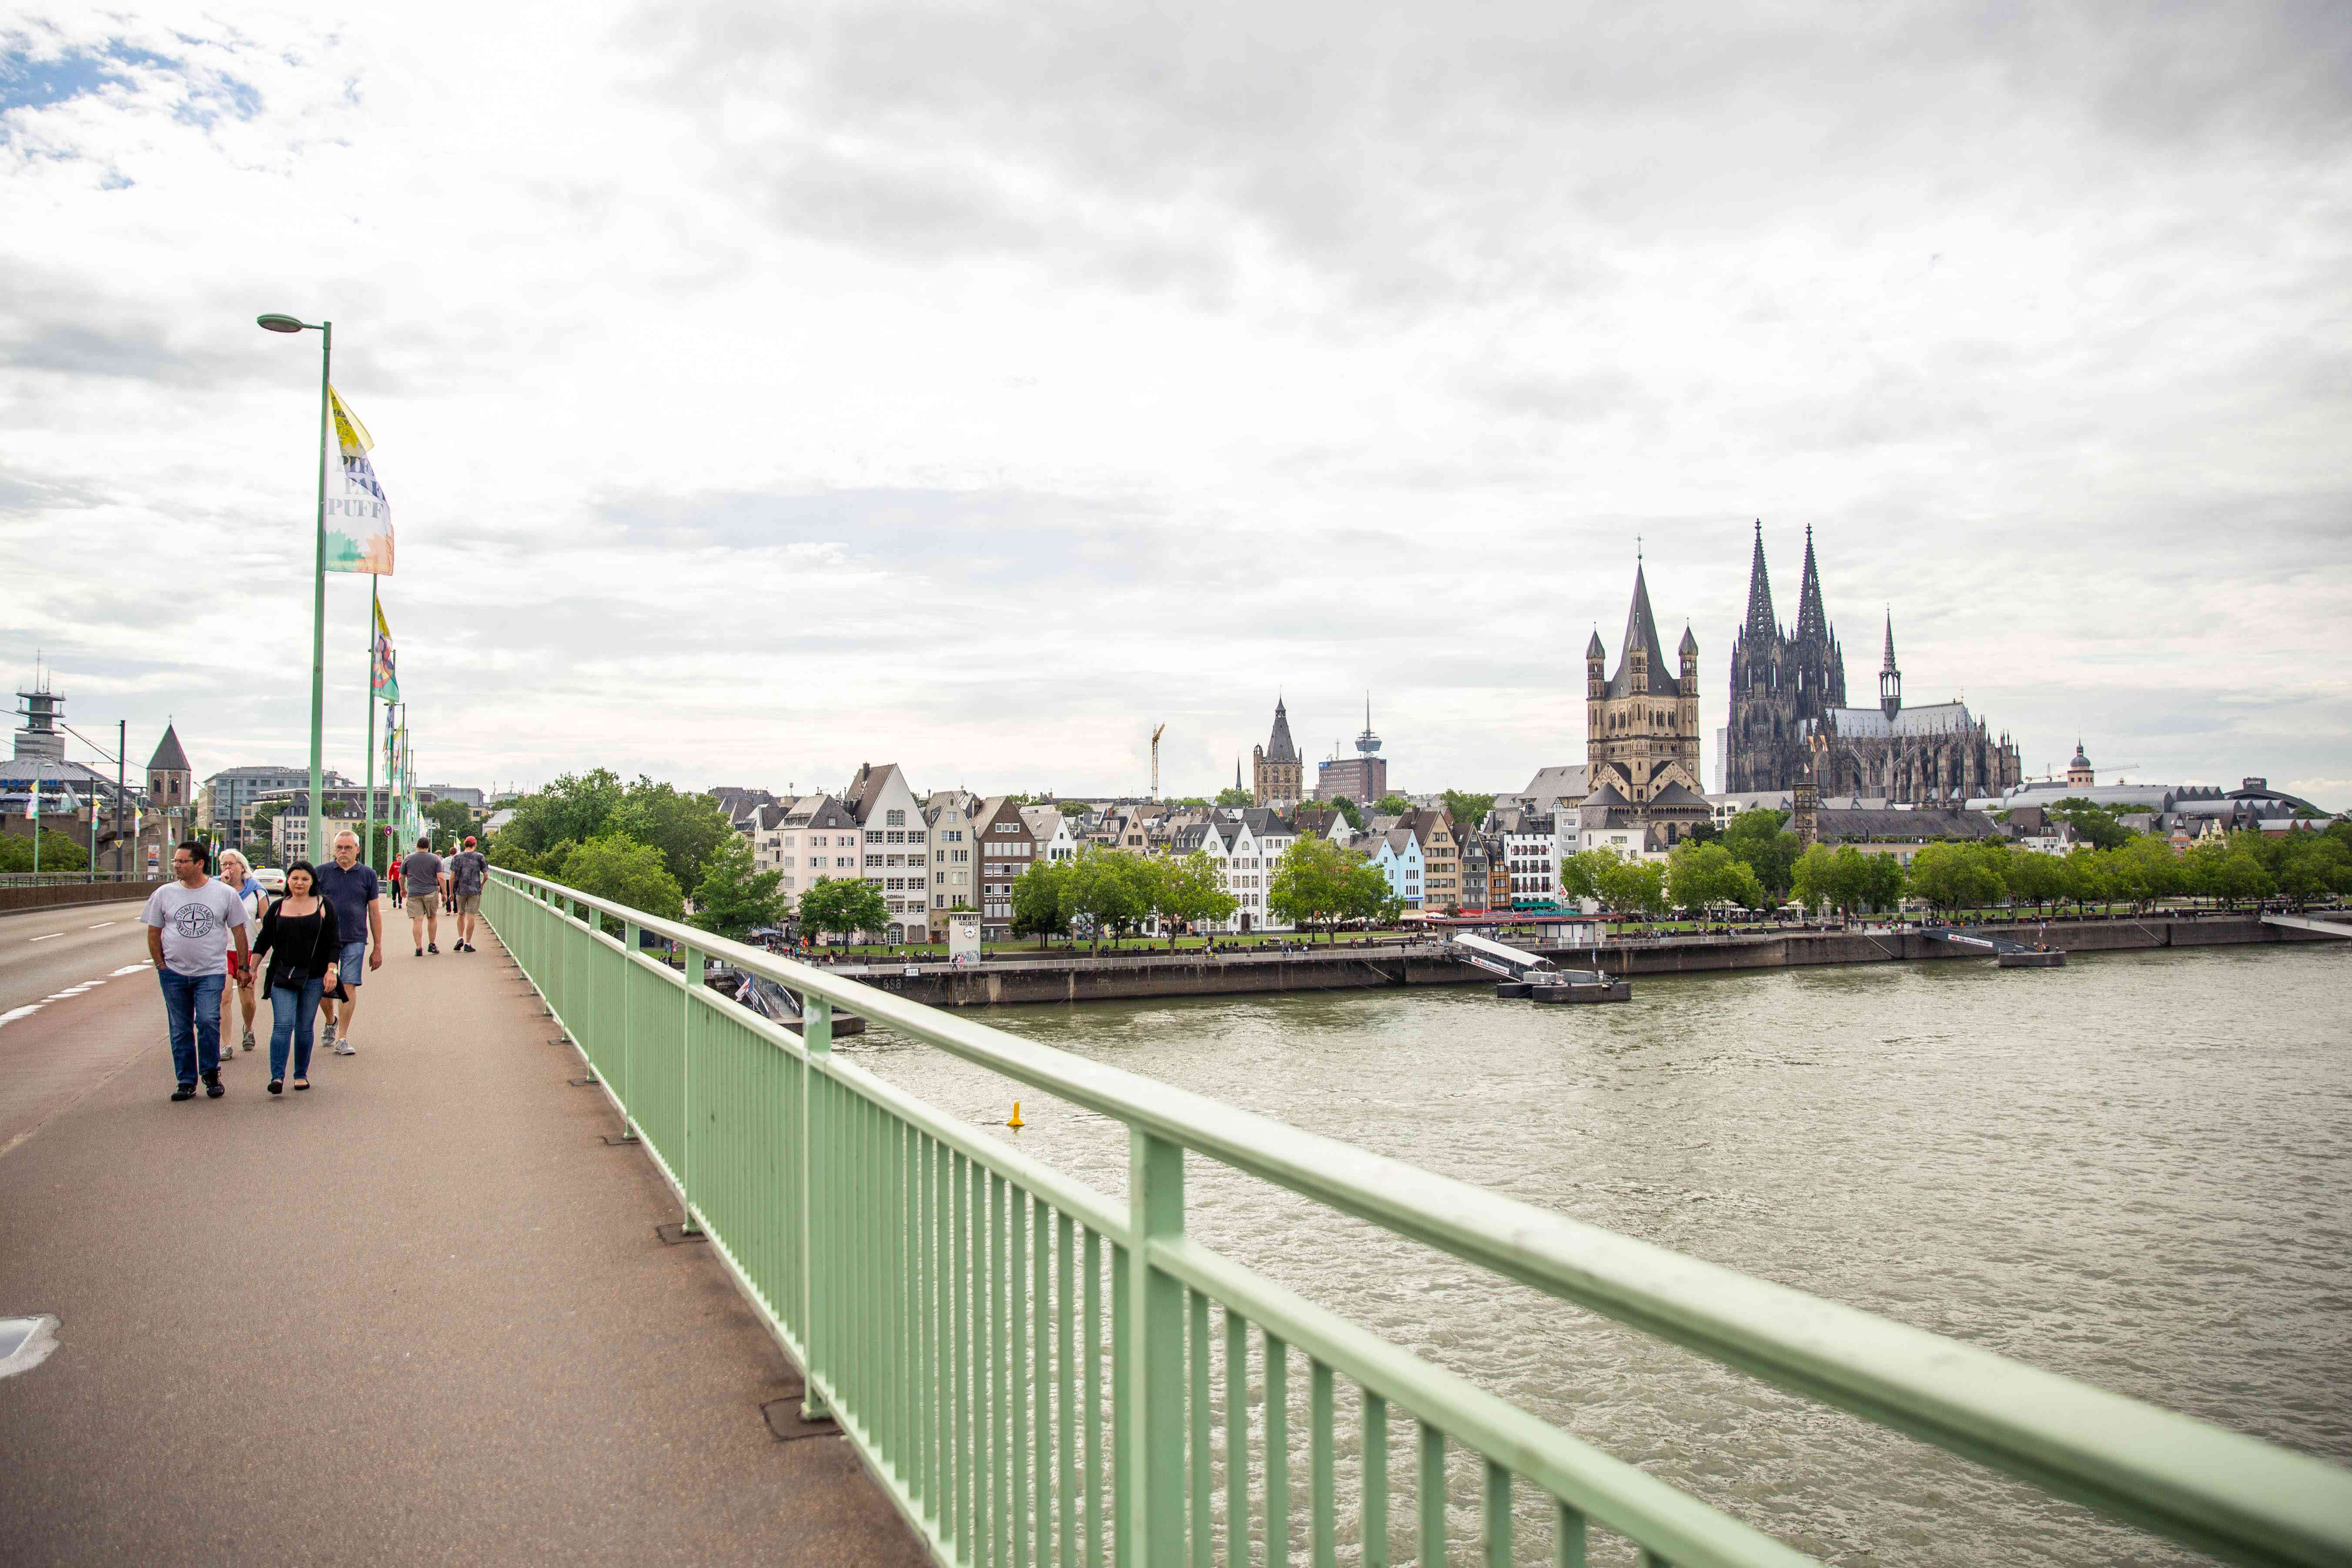 A shot of the view from the Deutzer bridge and people walking across it.